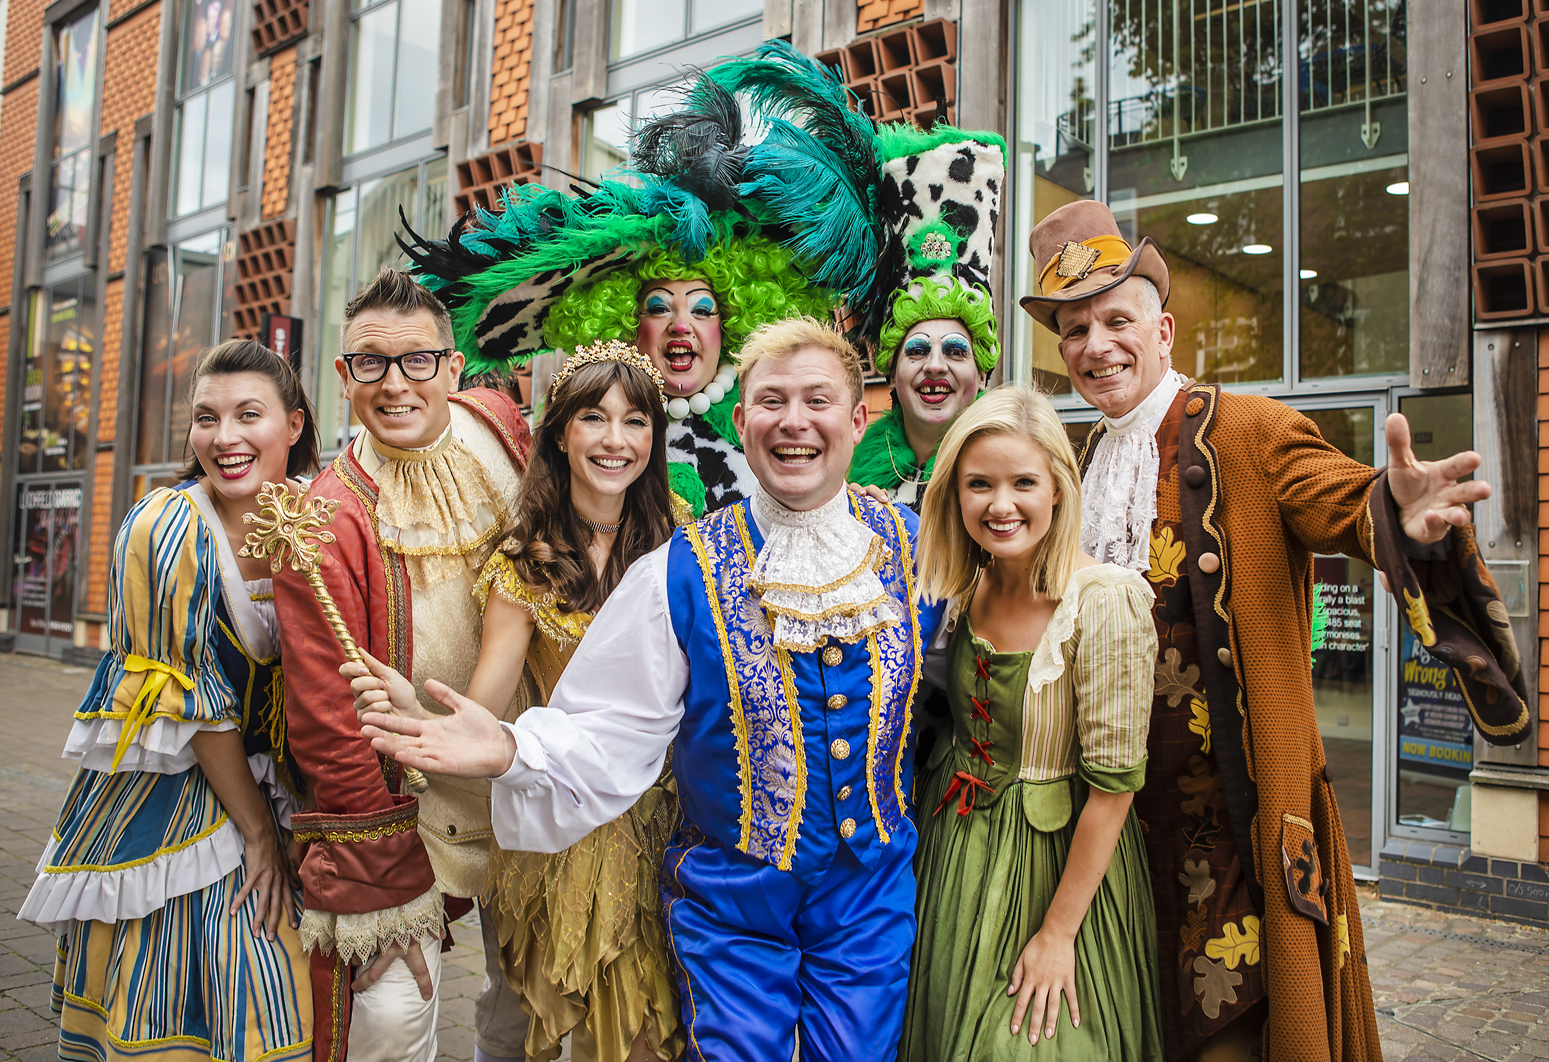 064_Lichfield Panto 2019 Press Launch_Pamela Raith Photography